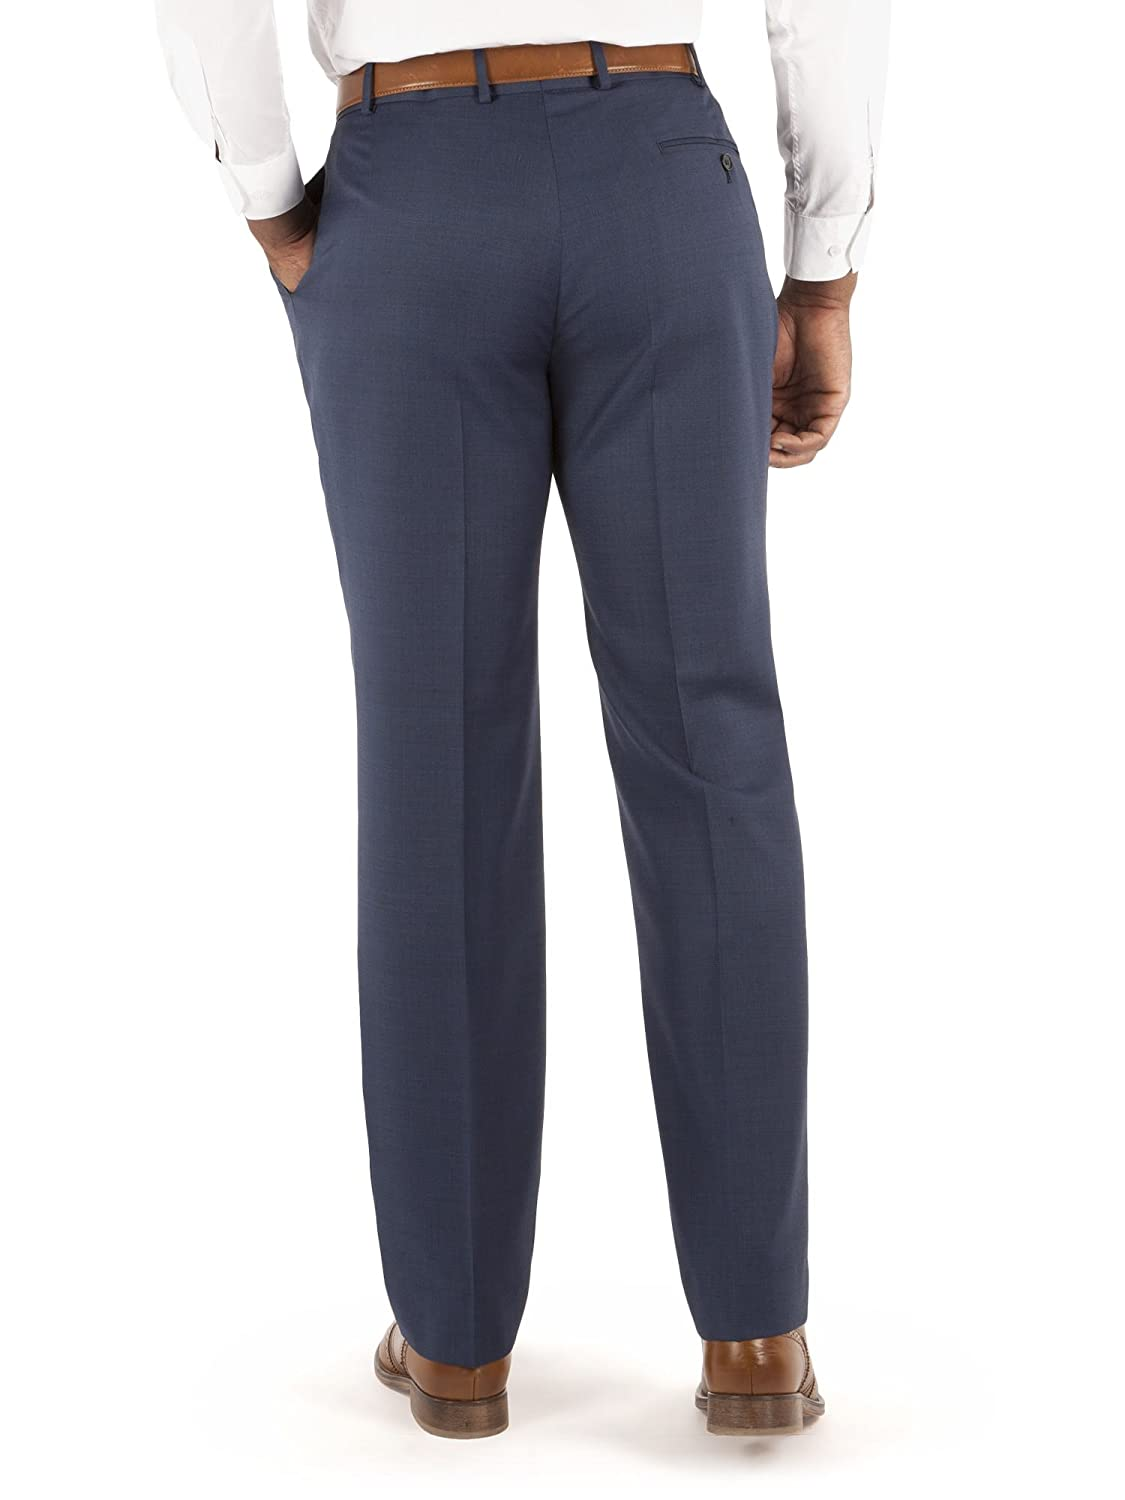 Centaur Big and Tall Mens Blue Suit Trouser in 42L to 50R